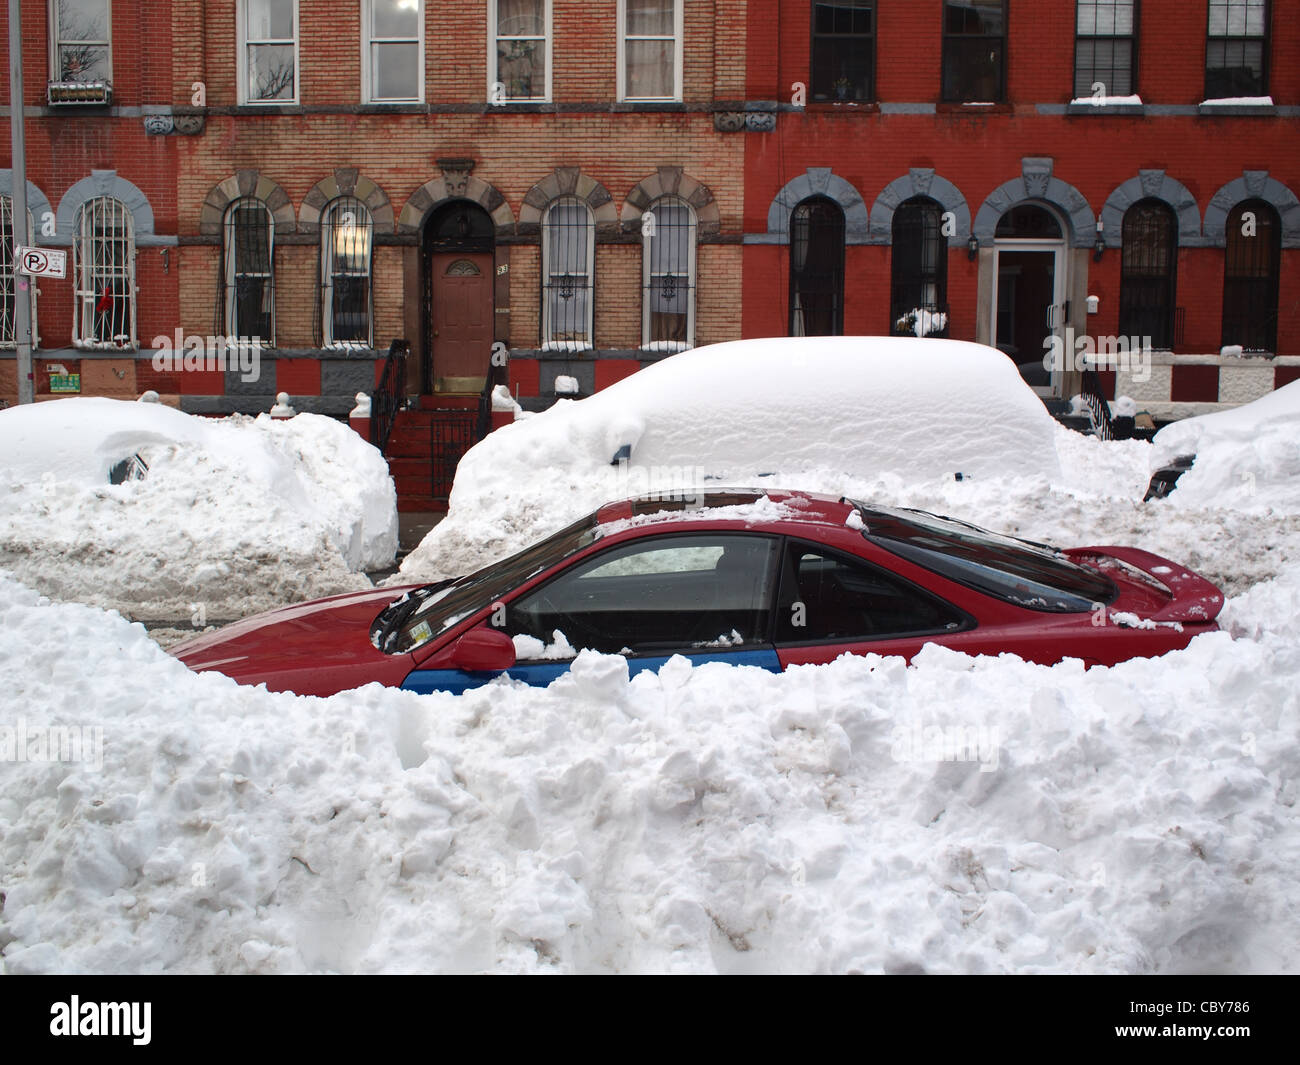 Cars buried in snow after winter storm, Brooklyn, New York Stock Photo: 41780374 - Alamy